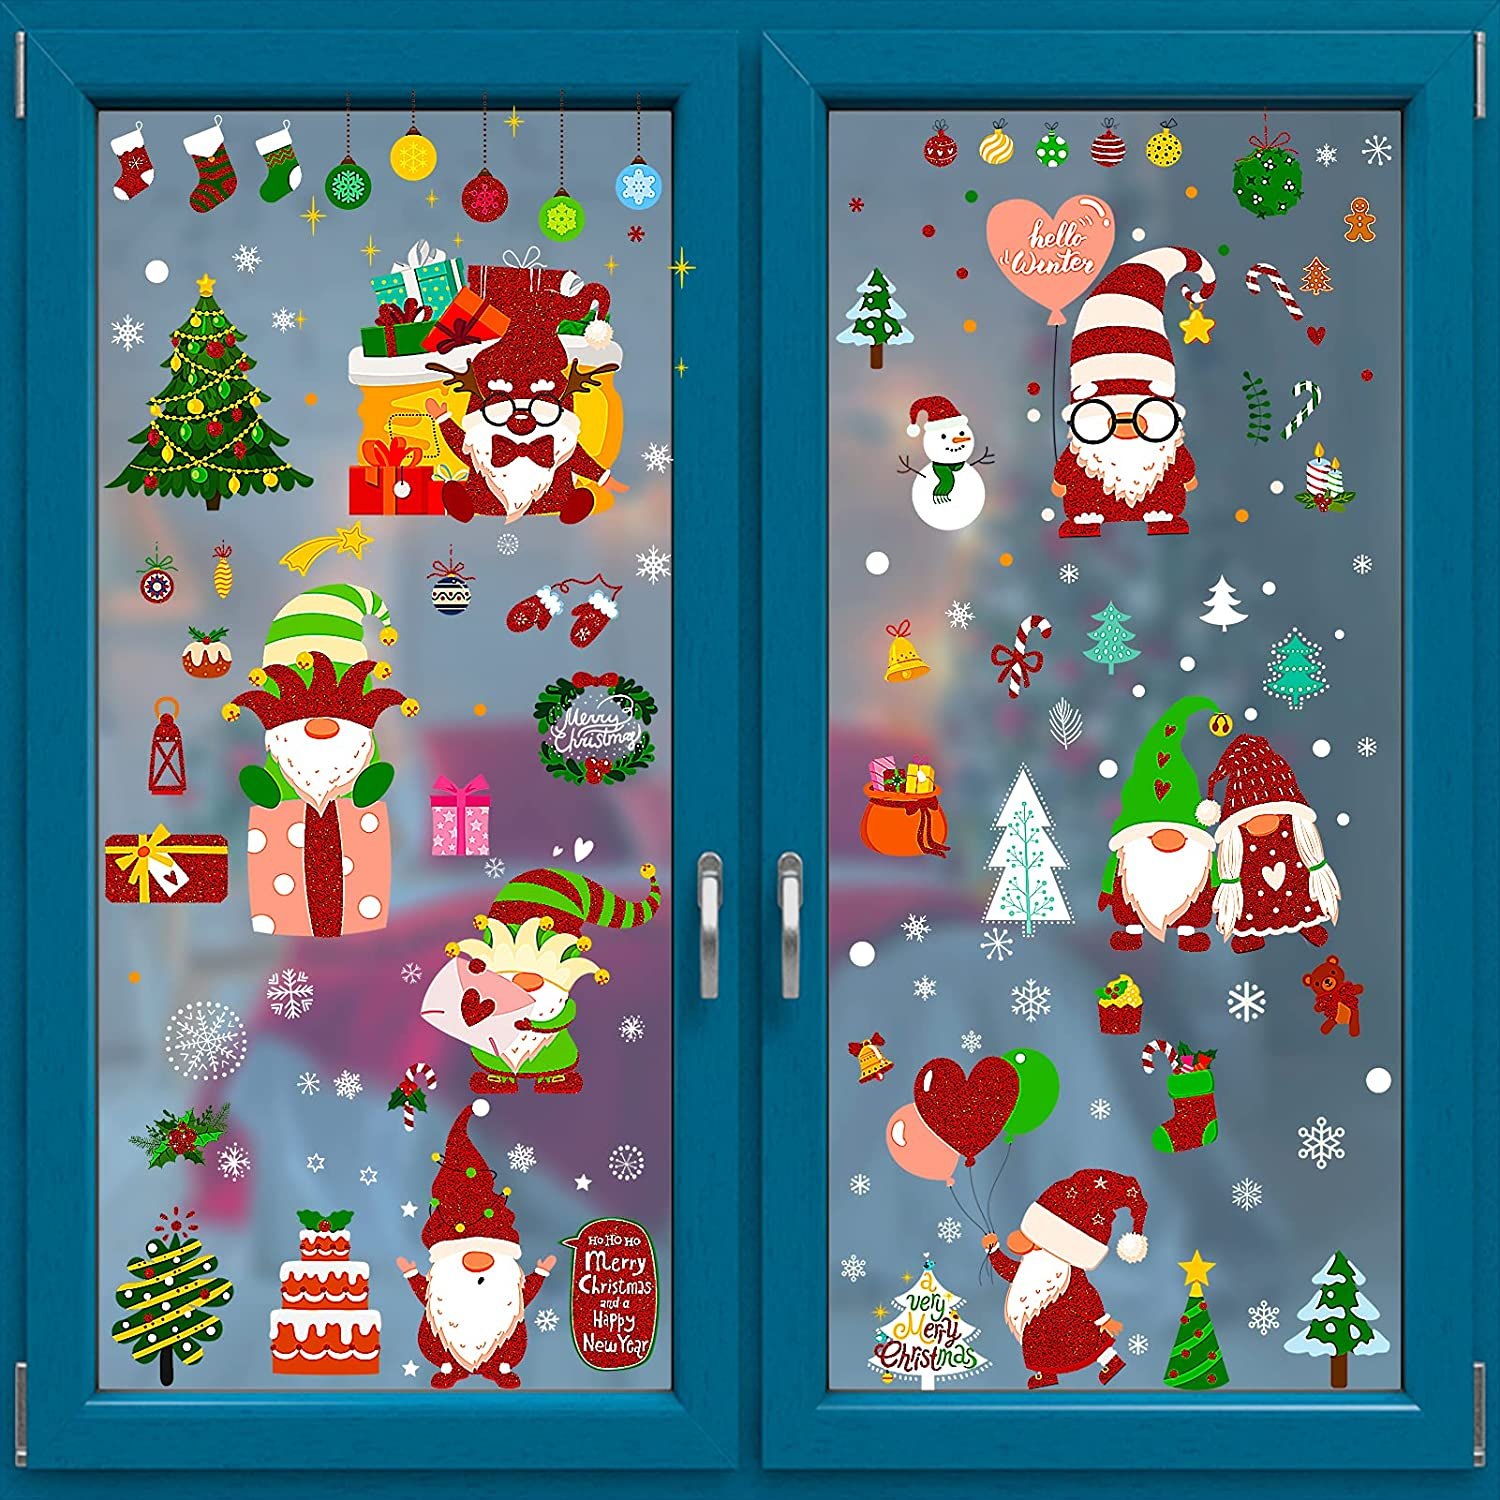 150Pcs Christmas Window Clings with Glitter Red, 9 Sheets Gnomes Santa Snowflake Window Decal Stickers Double Sided Xmas Holiday Home Decorations for Glass Windows